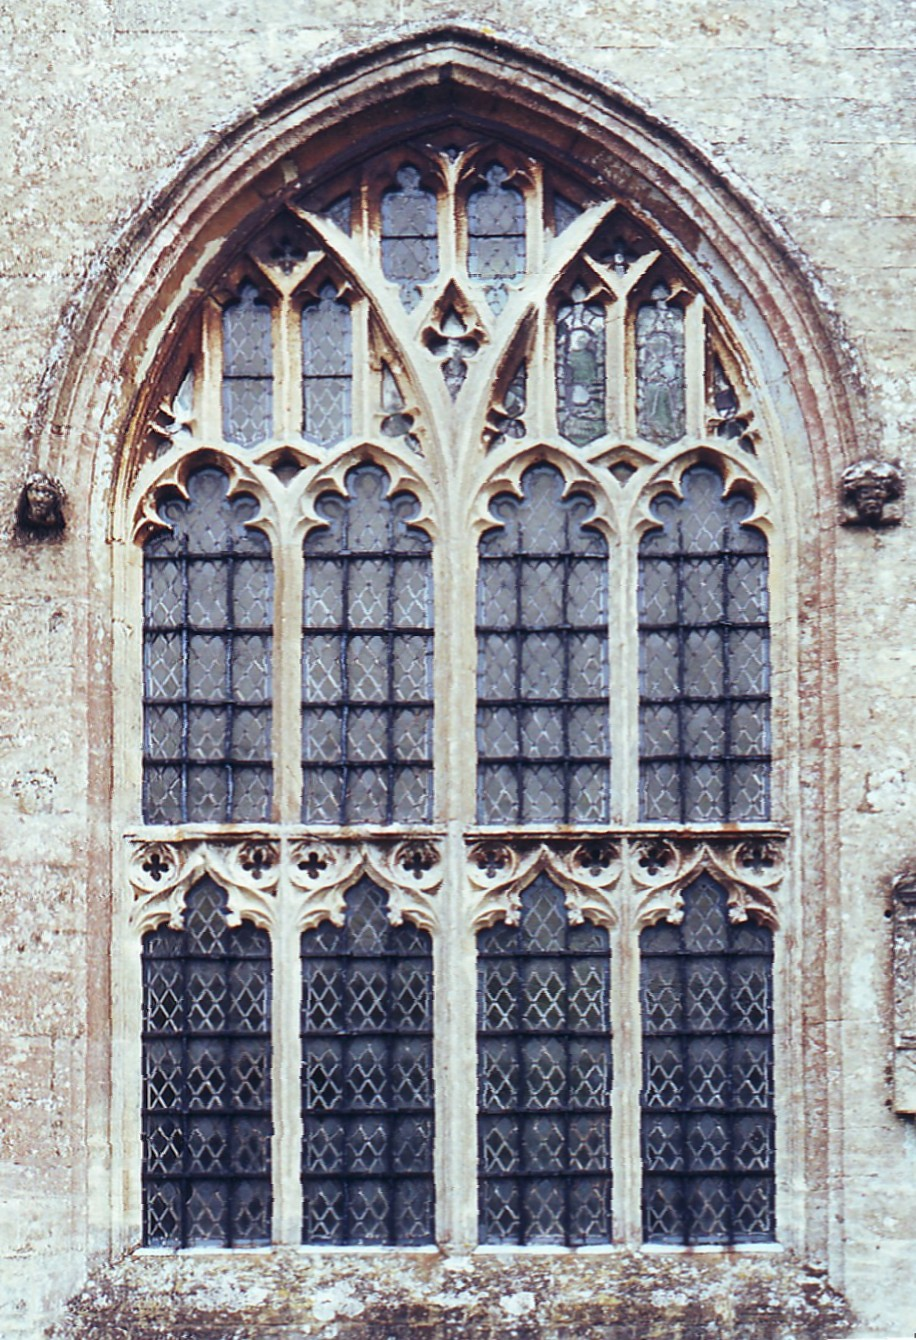 V The N Windows To Aisle And Chapel Are Two Centred Have Four Lights Subarcuated In Pairs Through Reticulation A Latticed Transom Effect